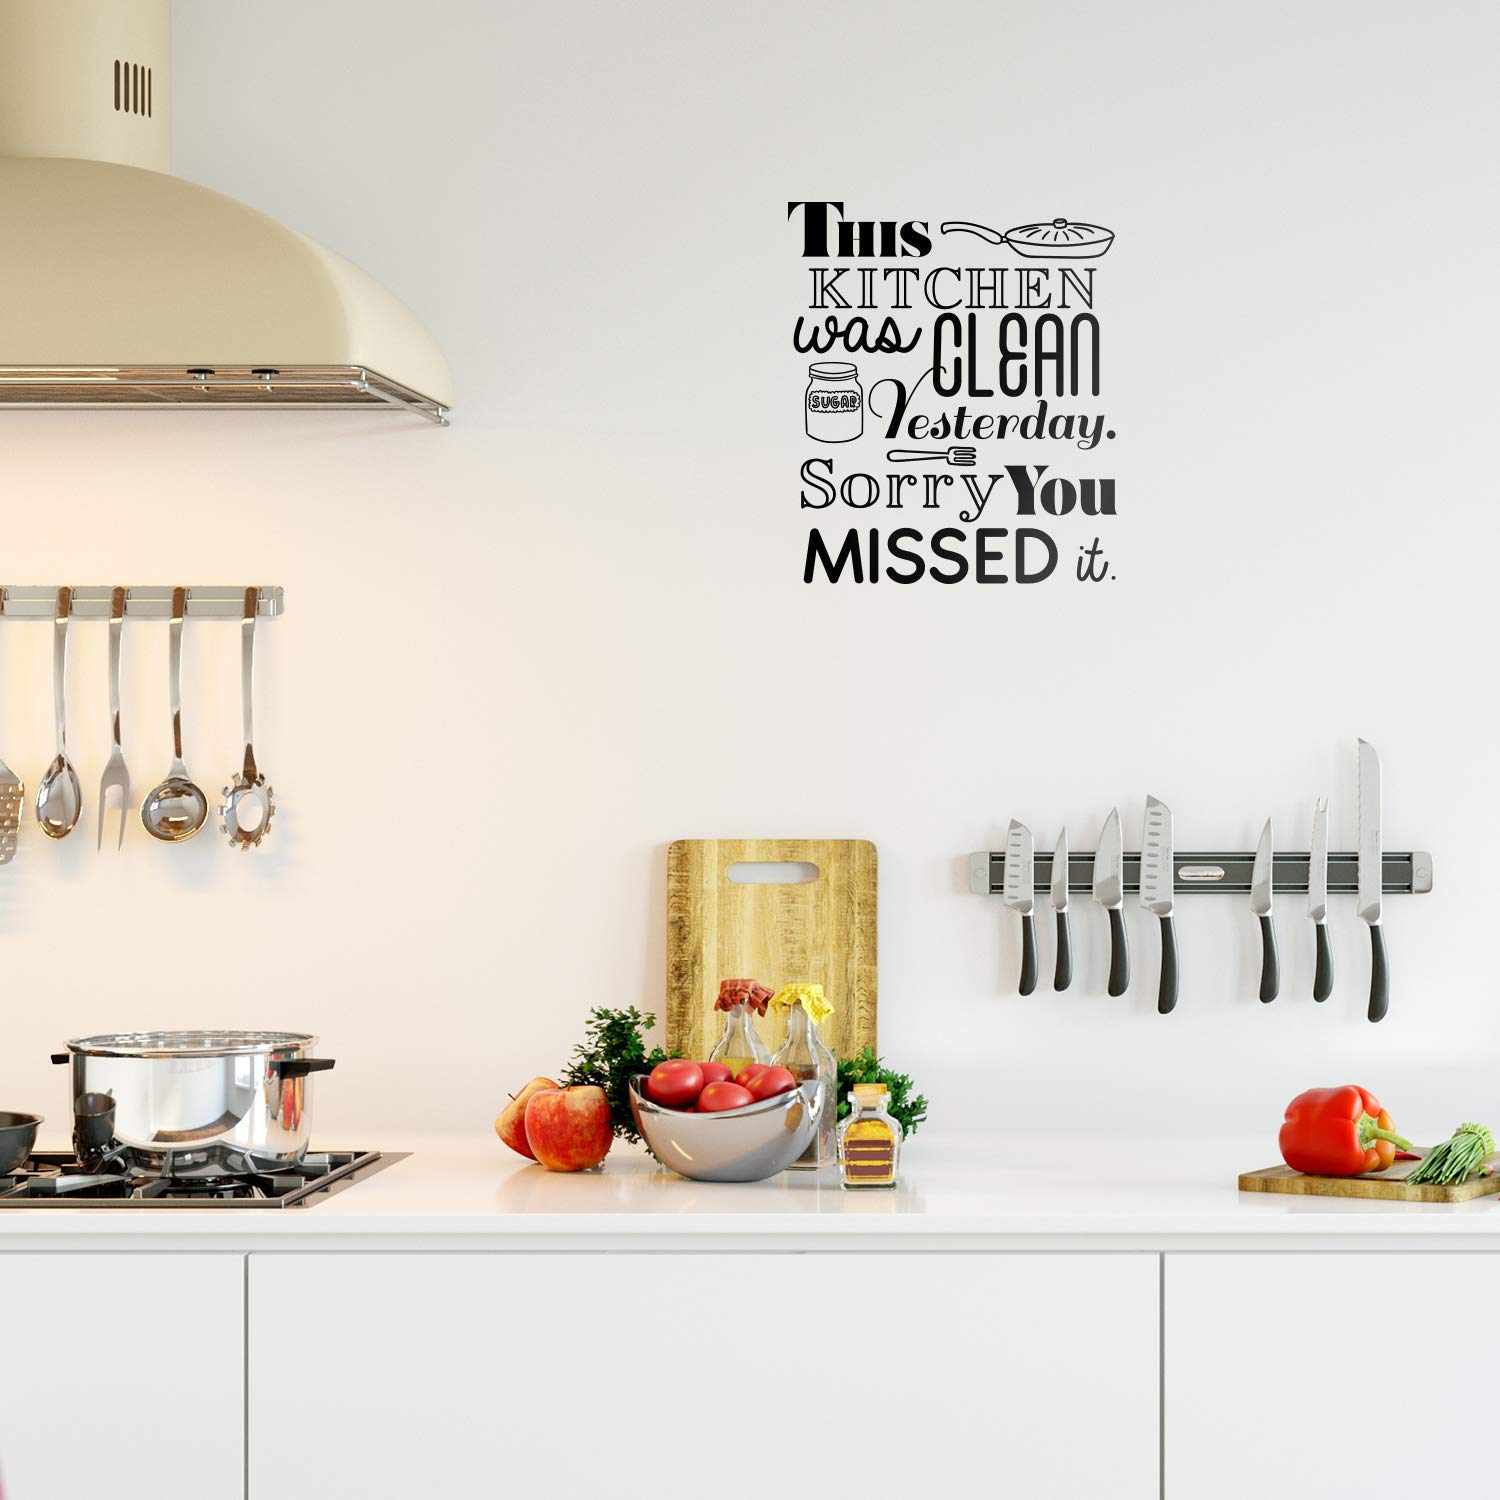 Vinyl Wall Art Decal   This Kitchen was Clean Yesterday Sorry You Missed It    9